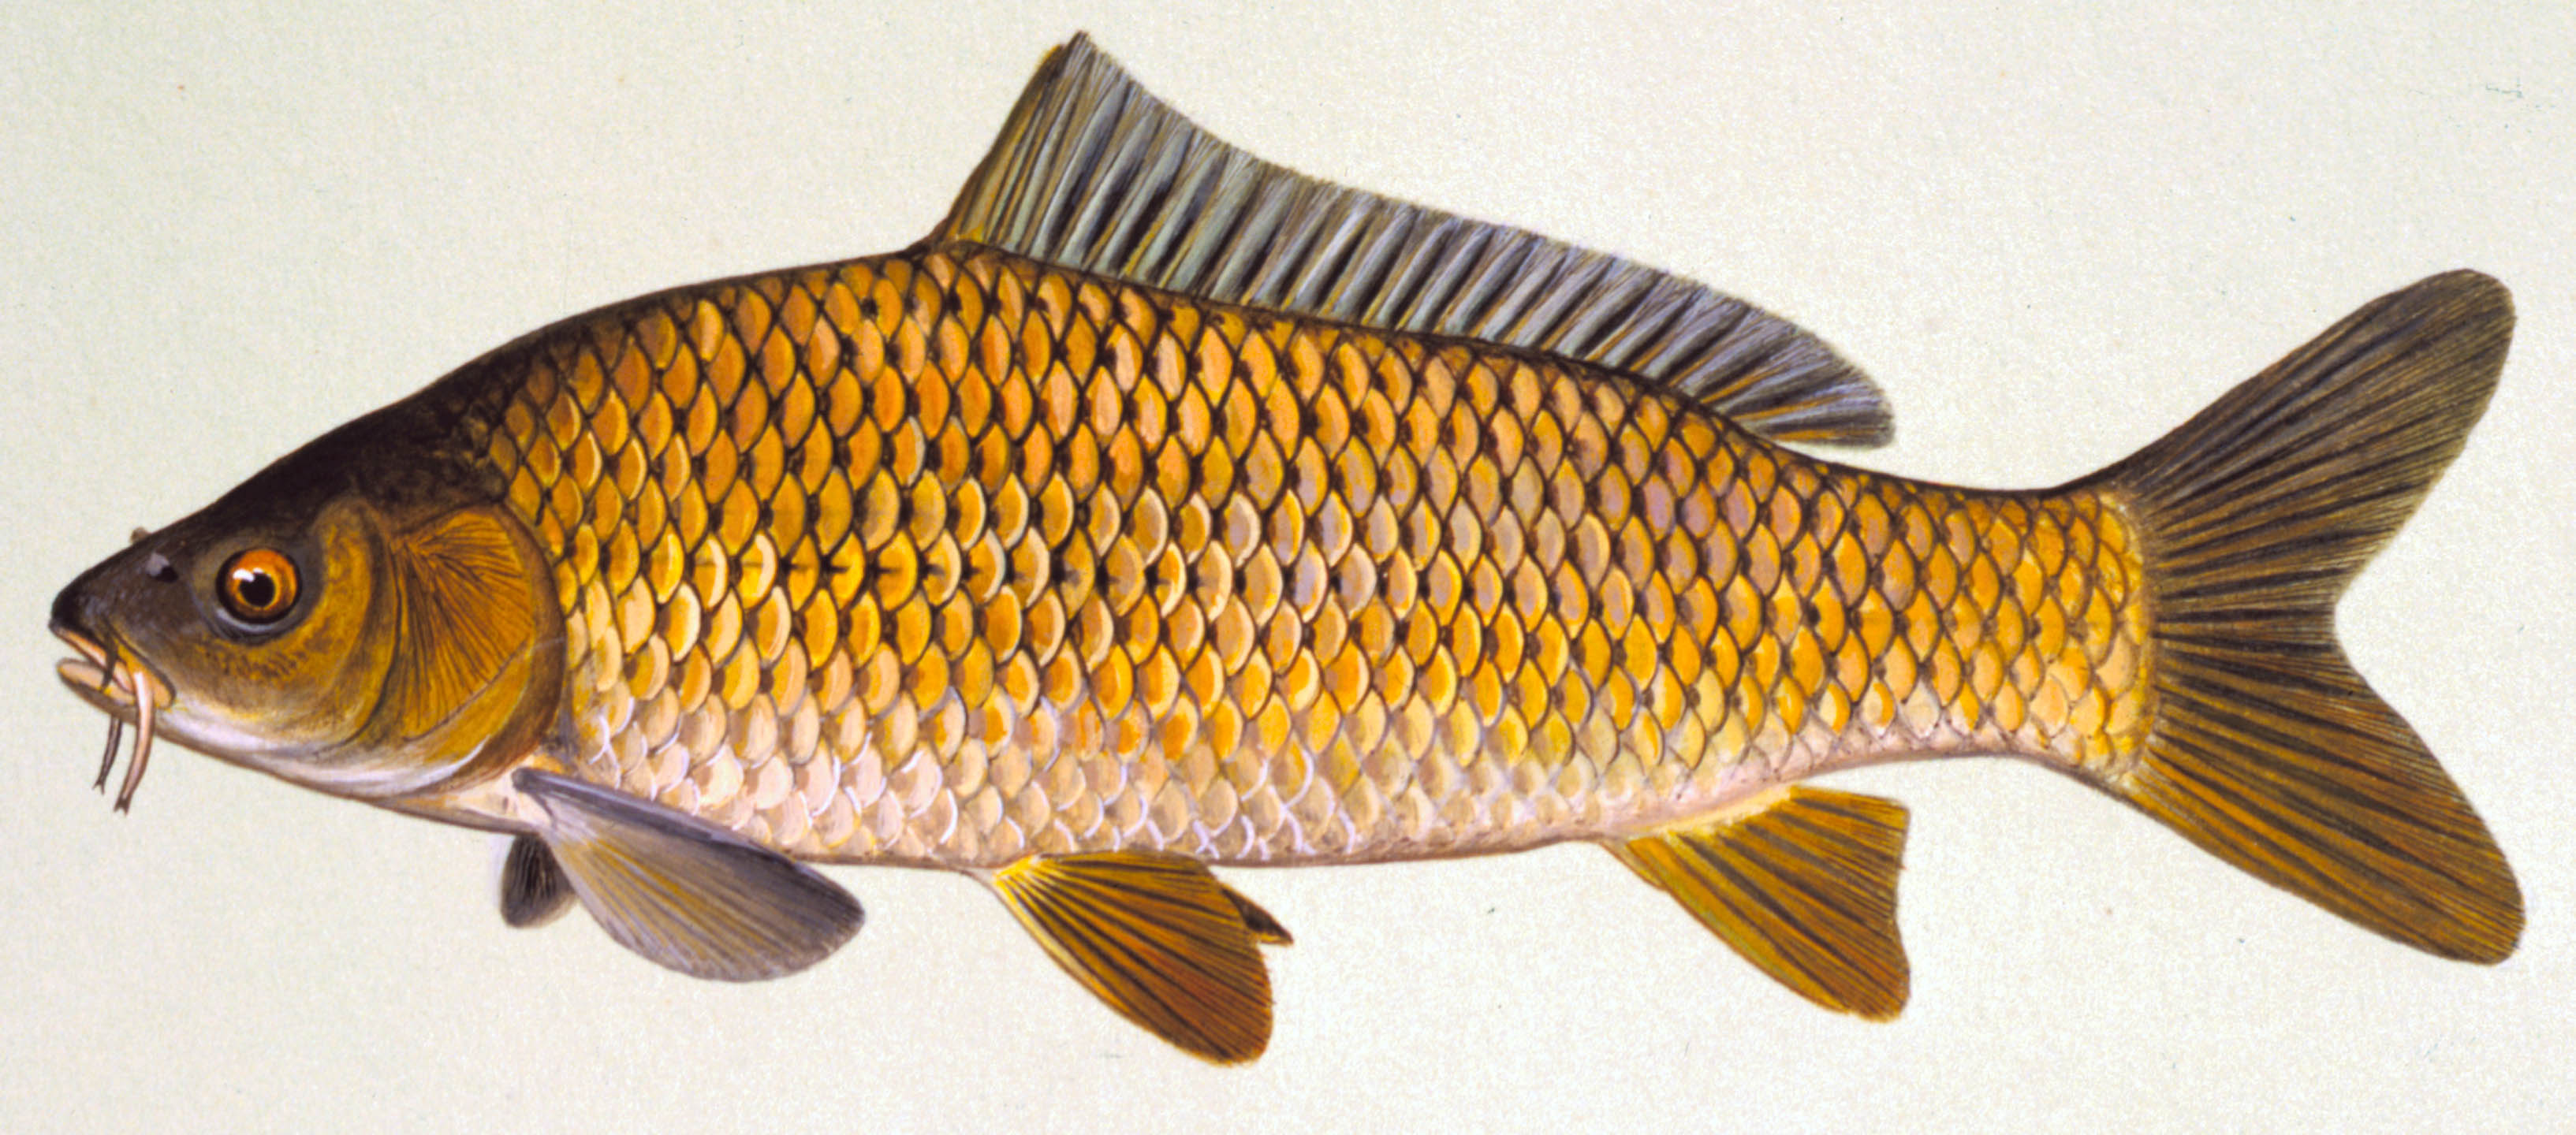 Common Carp, illustration by Maynard Reece, from Iowa Fish and Fishing.